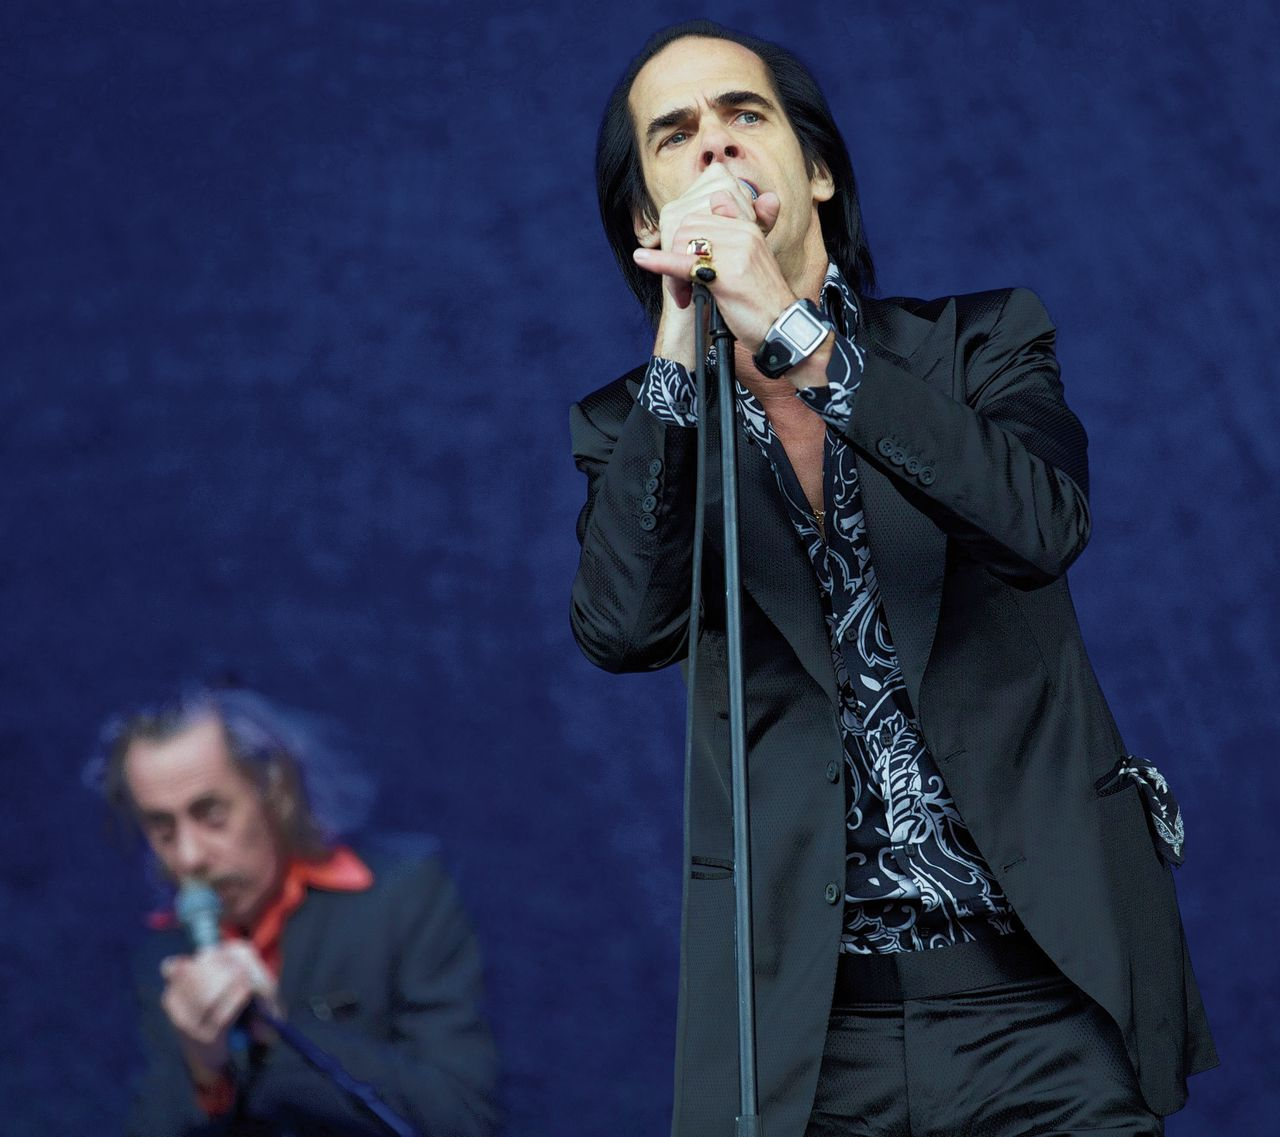 (FILES) This file photo taken on June 30, 2013 shows Australian musician Nick Cave performing with the band Nick Cave and the Bad Seeds on the Pyramid Stage during the Glastonbury Festival of Contemporary Performing Arts near Glastonbury, southwest England. About 6000 people on October 3, 2017 attended the Paris concert of Nick Cave and his band, who are currently touring Europe. / AFP PHOTO / ANDREW COWIE